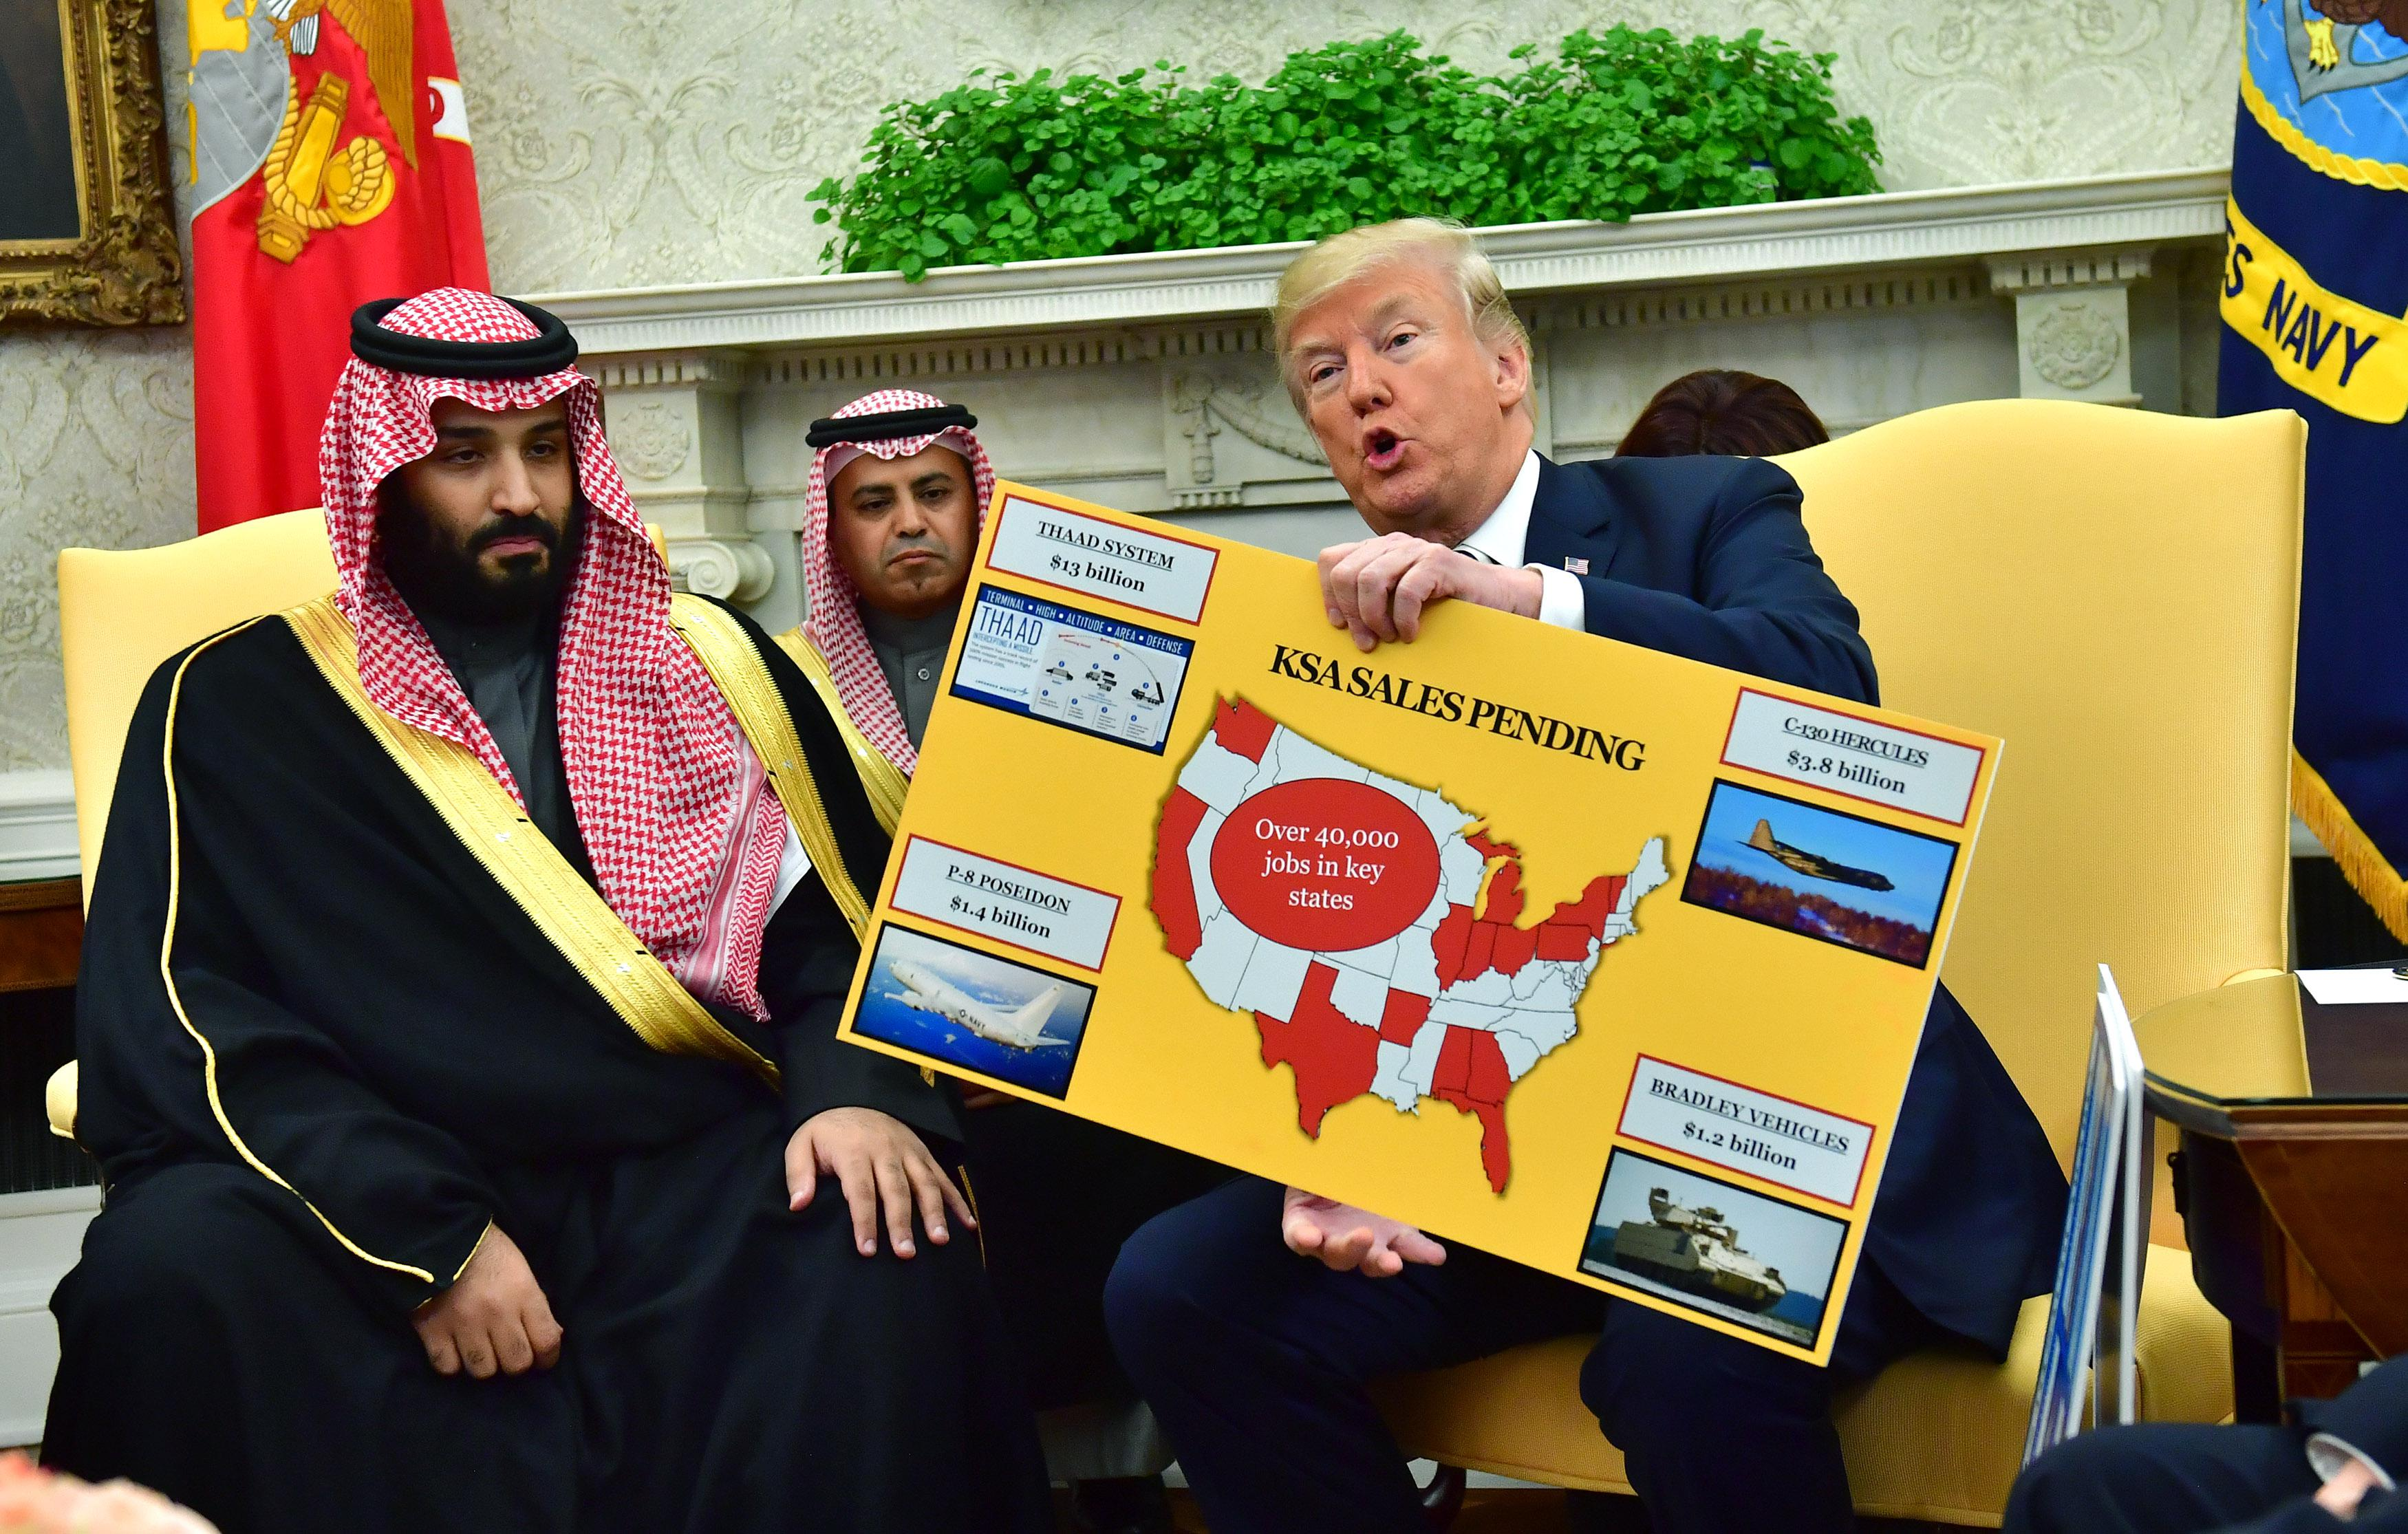 President Donald Trump holds up a chart of military hardware sales as he meets with Crown Prince Mohammed bin Salman of the Kingdom of Saudi Arabia in the Oval Office on March 20, 2018 in Washington, D.C.